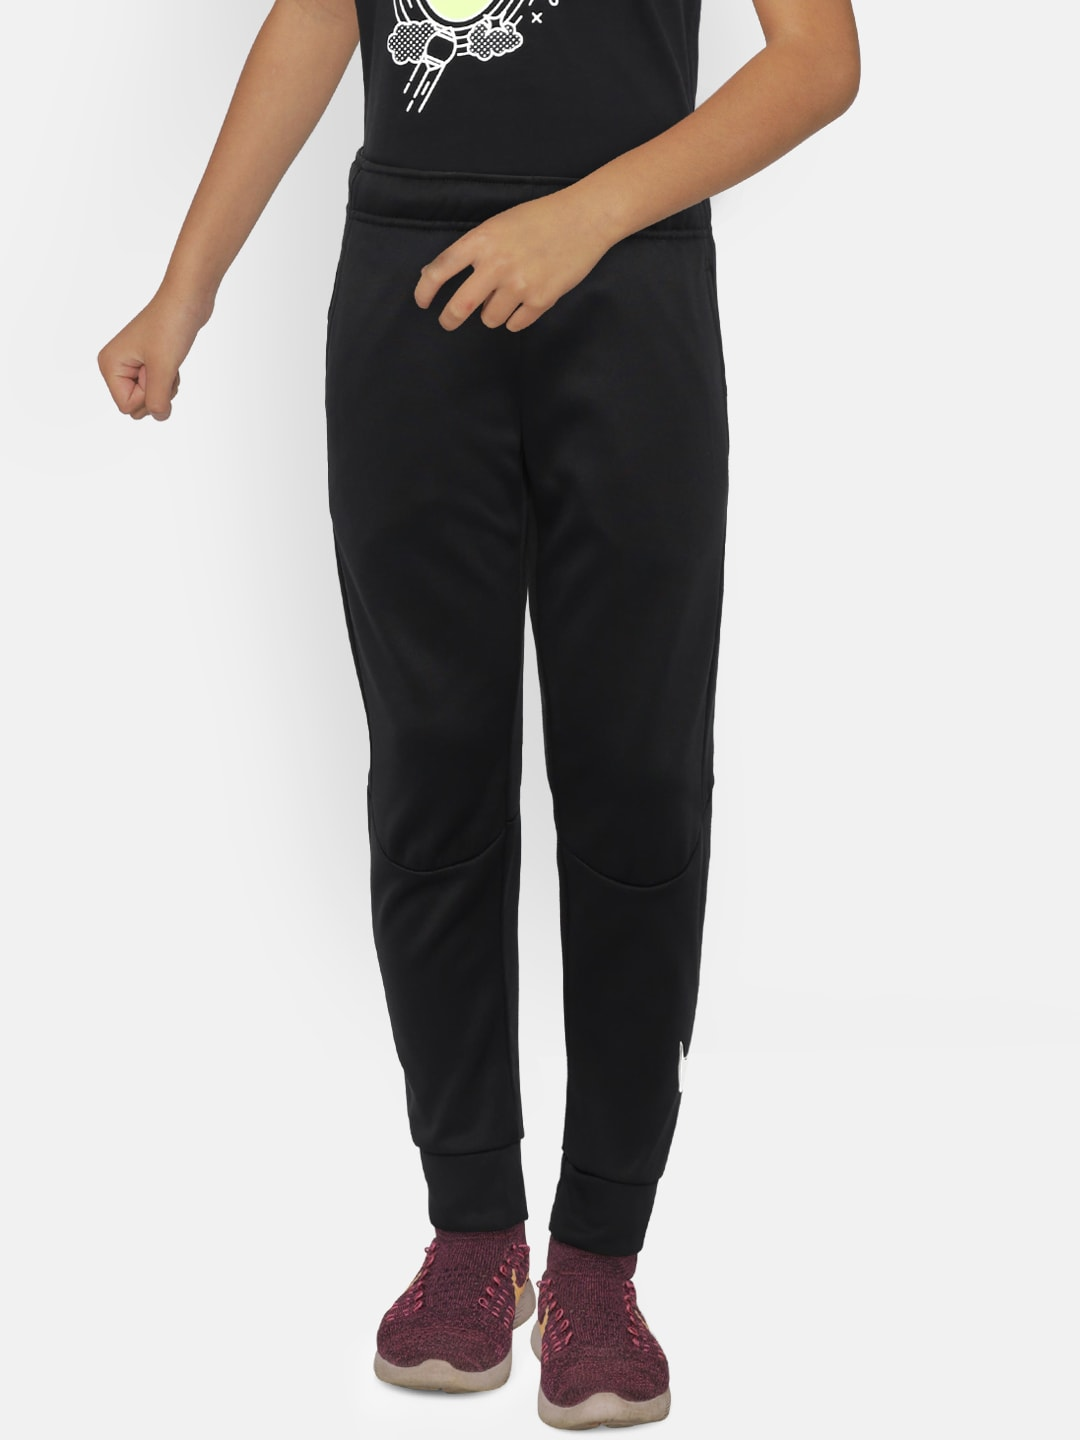 Boys Track Pants- Buy Track Pants for Boys online in India 6f9523aa4